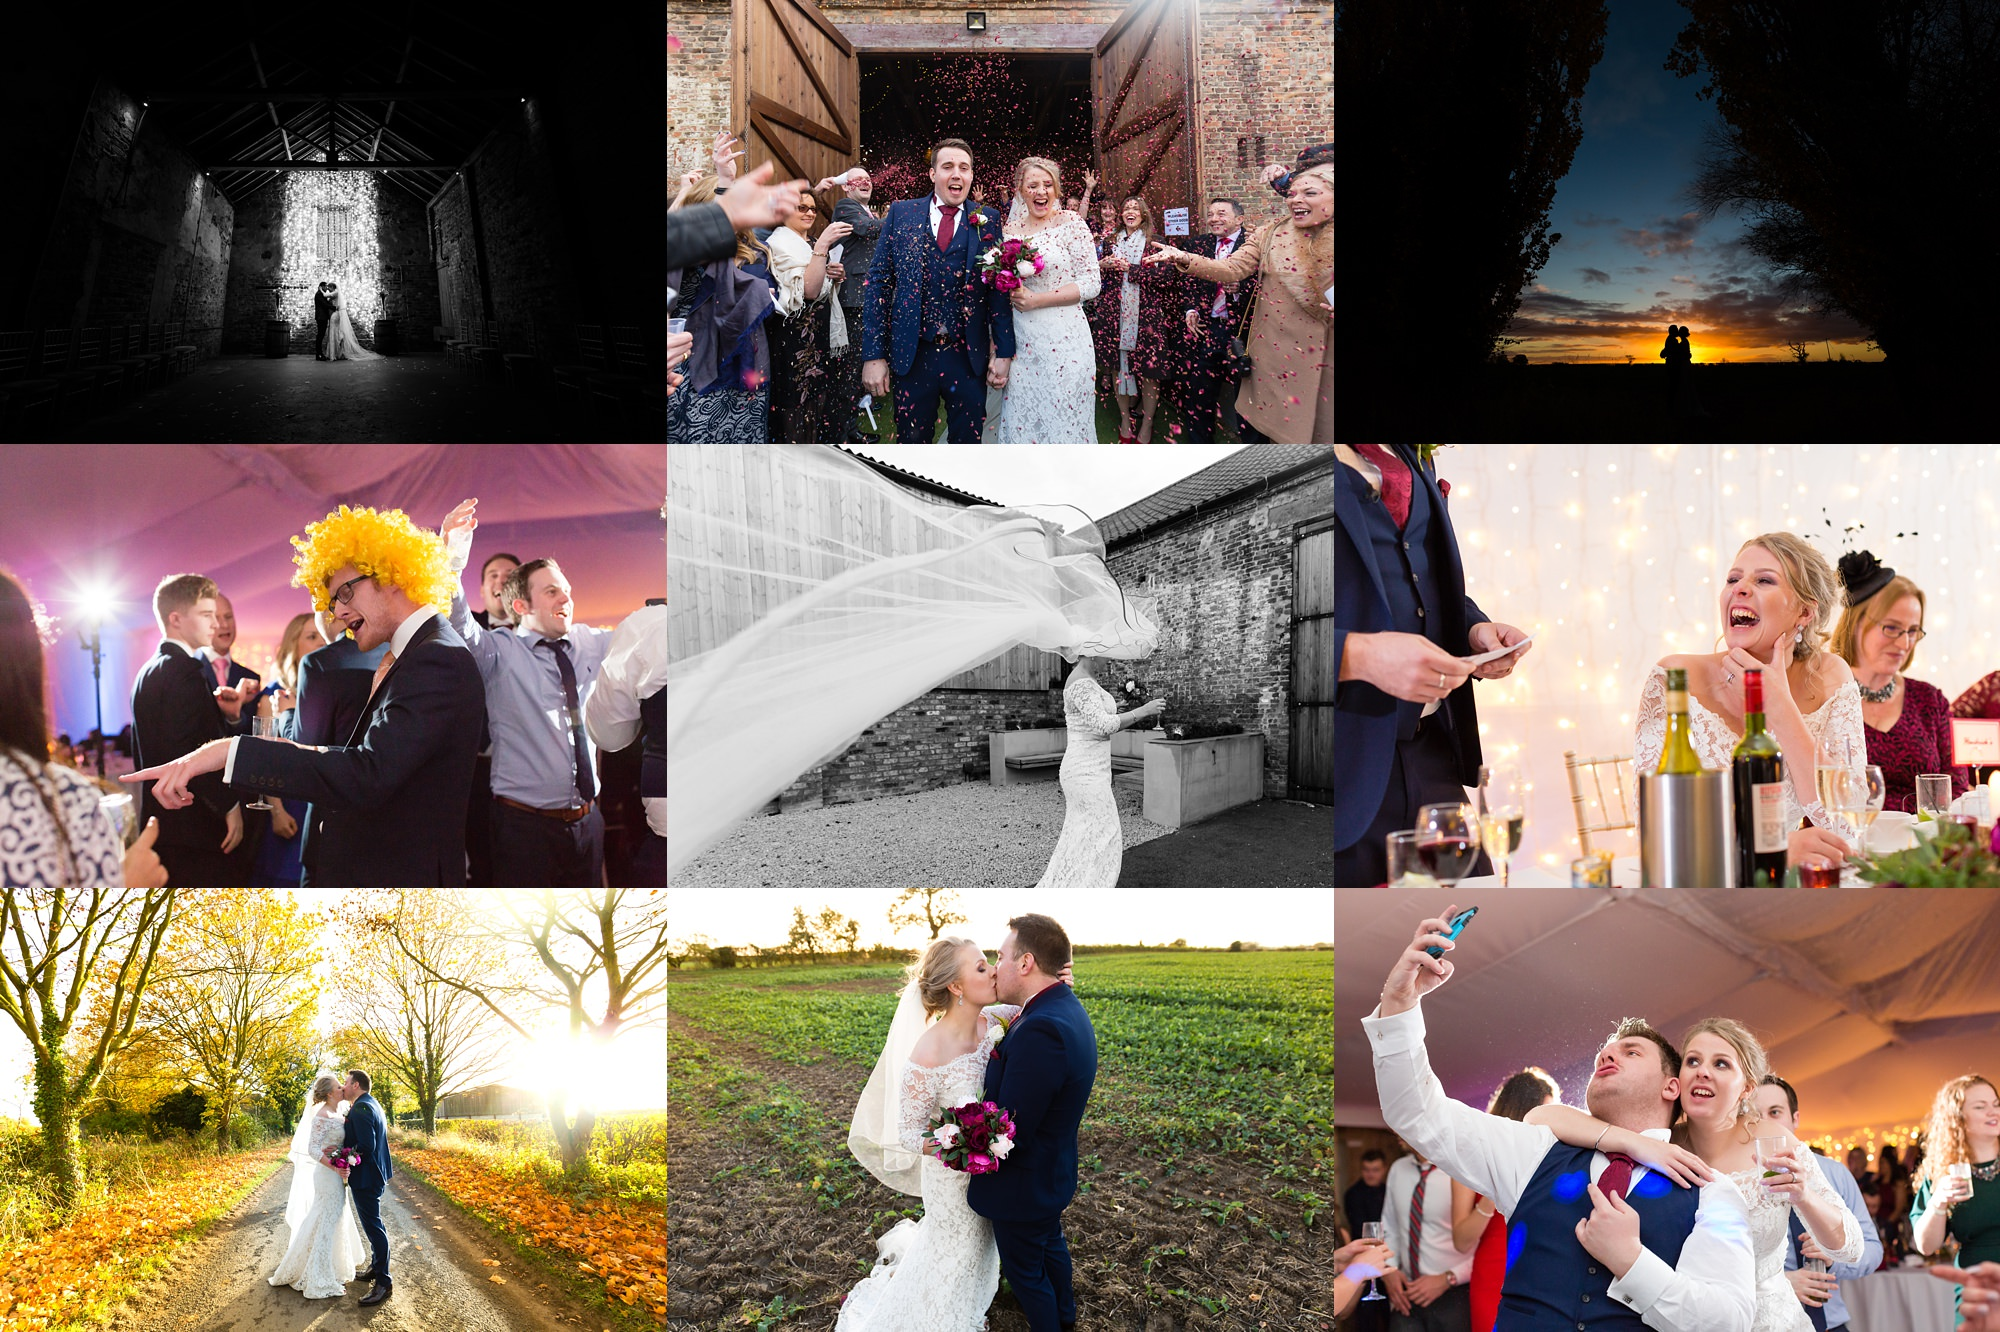 Yorkshire Wedding Photography Barn Venues Collage of The Normans Weddings